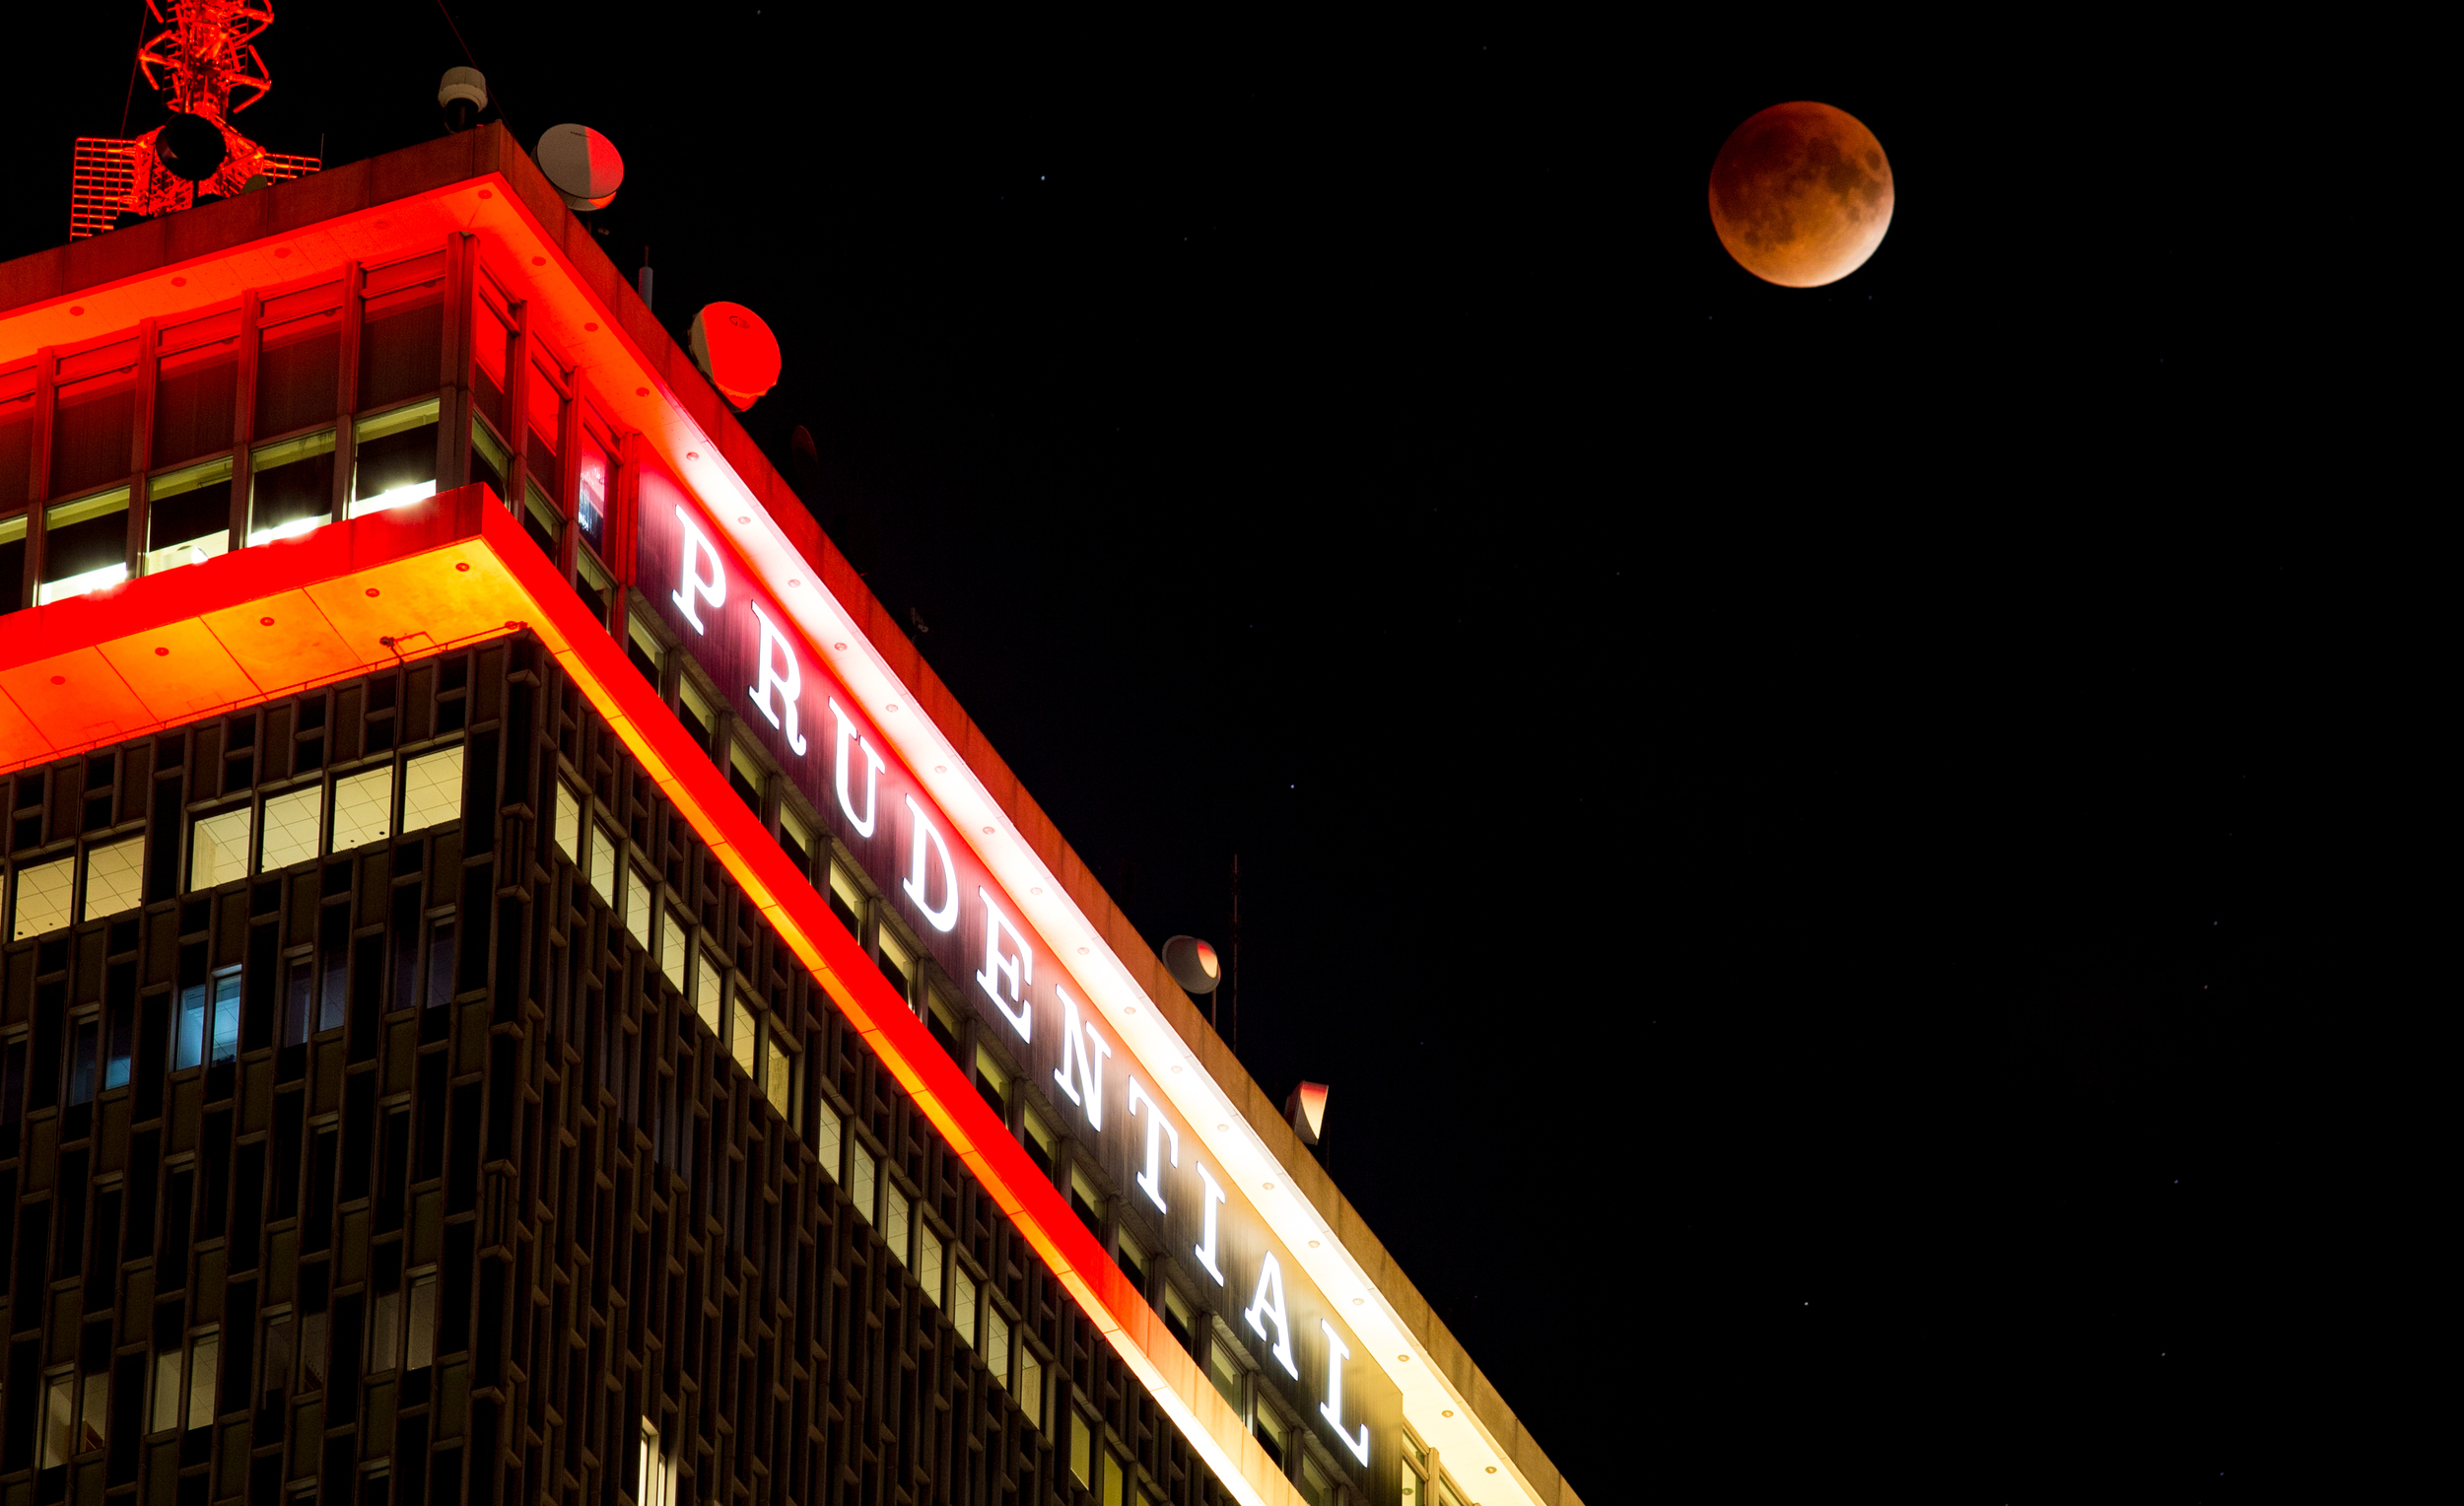 Wider shot of the Super Blood Moon over the Prudential Building in Boston